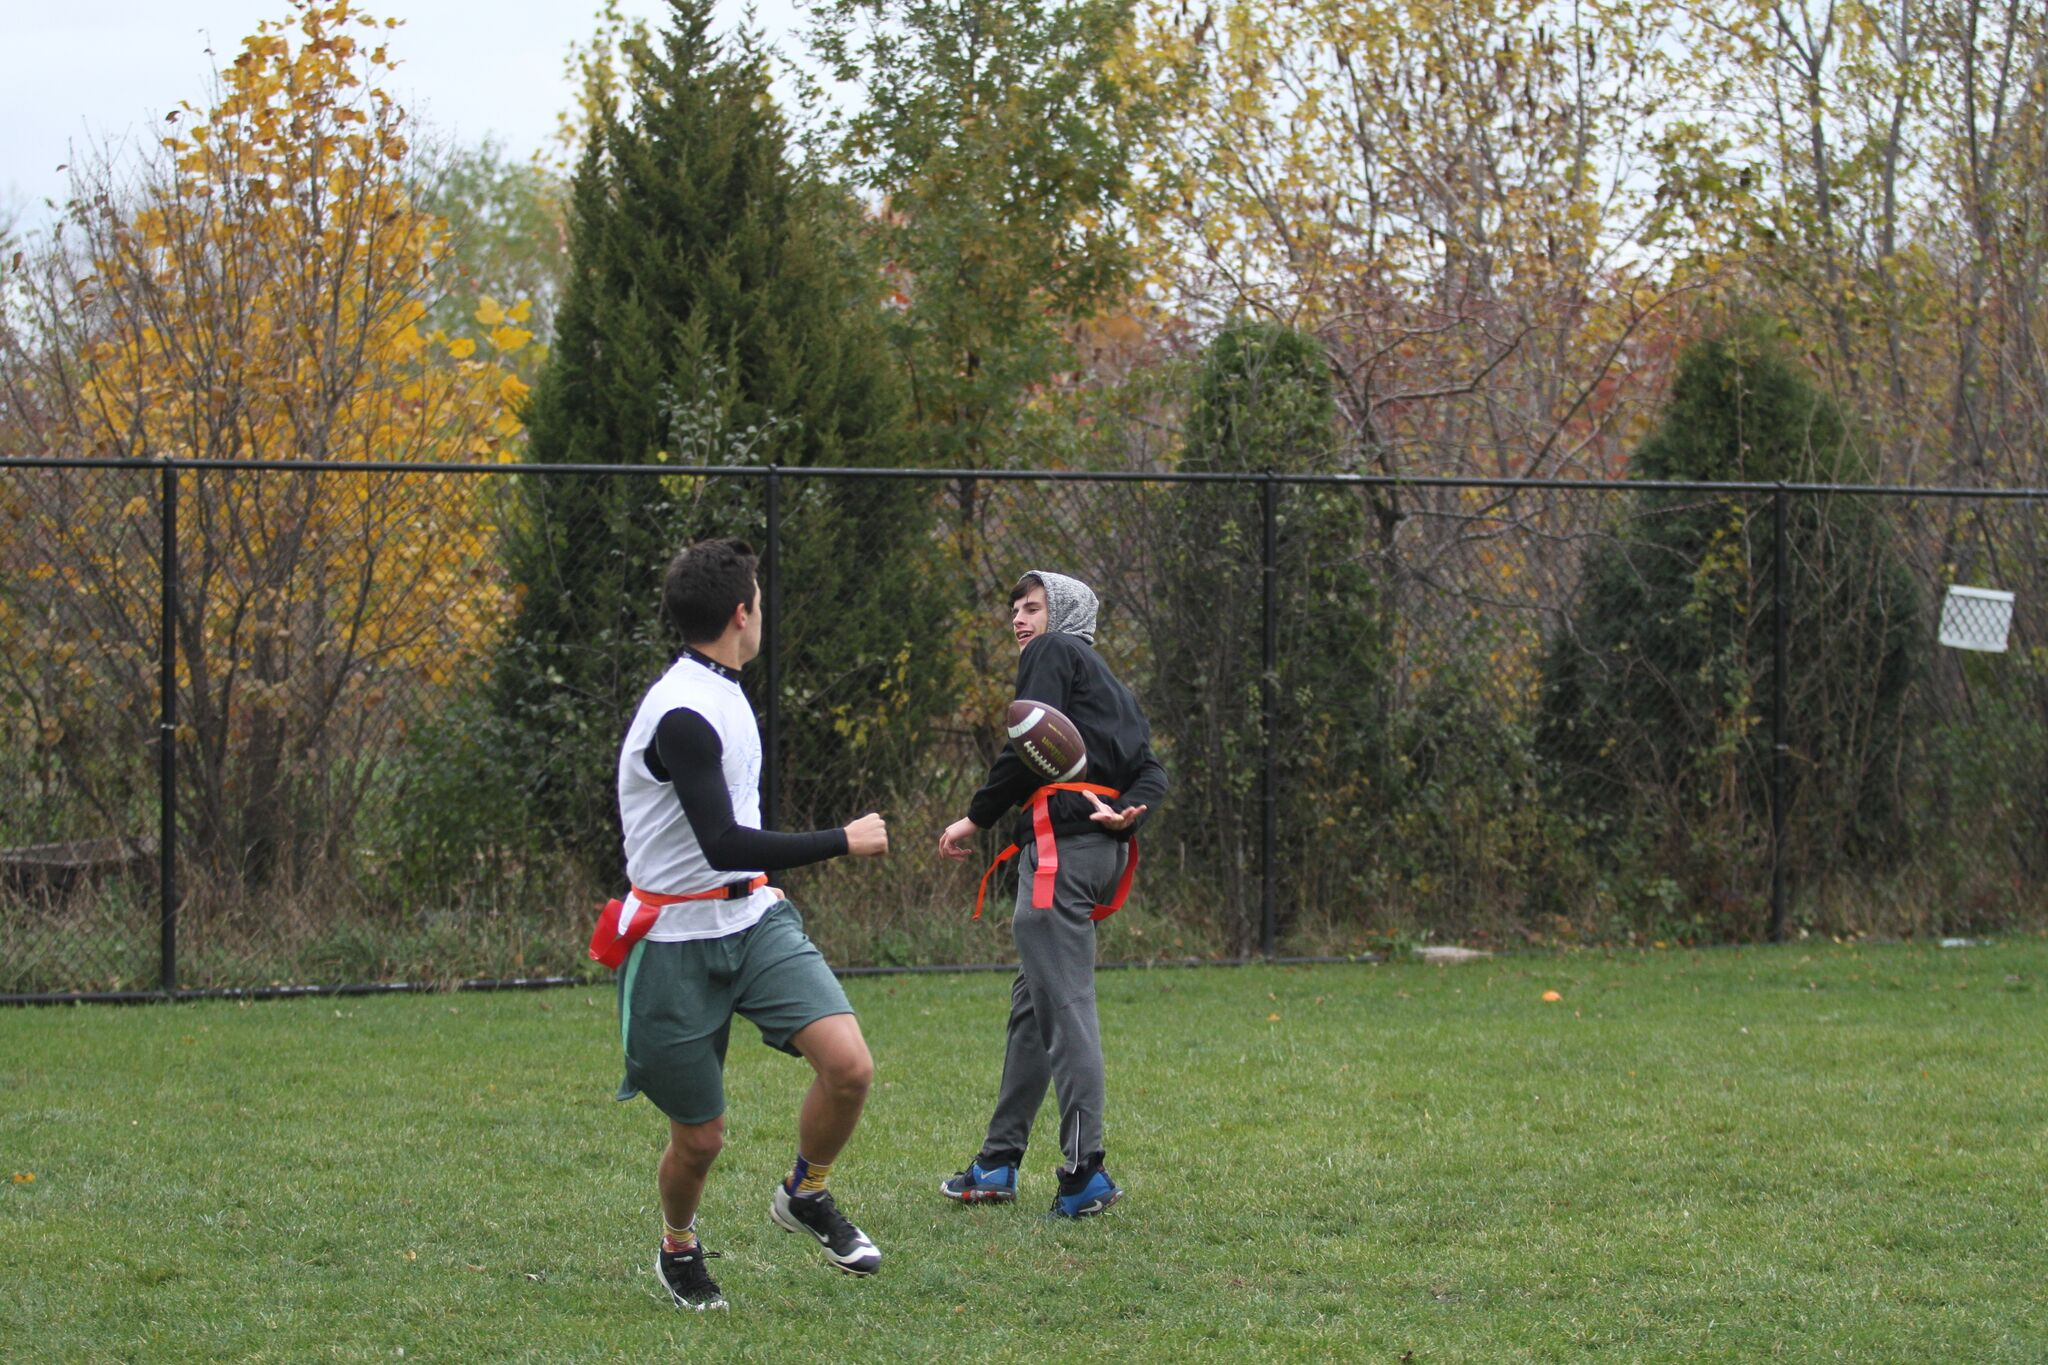 Jack Vasilopoulos, Adv. 006, tosses the ball to his teammate behind his back.